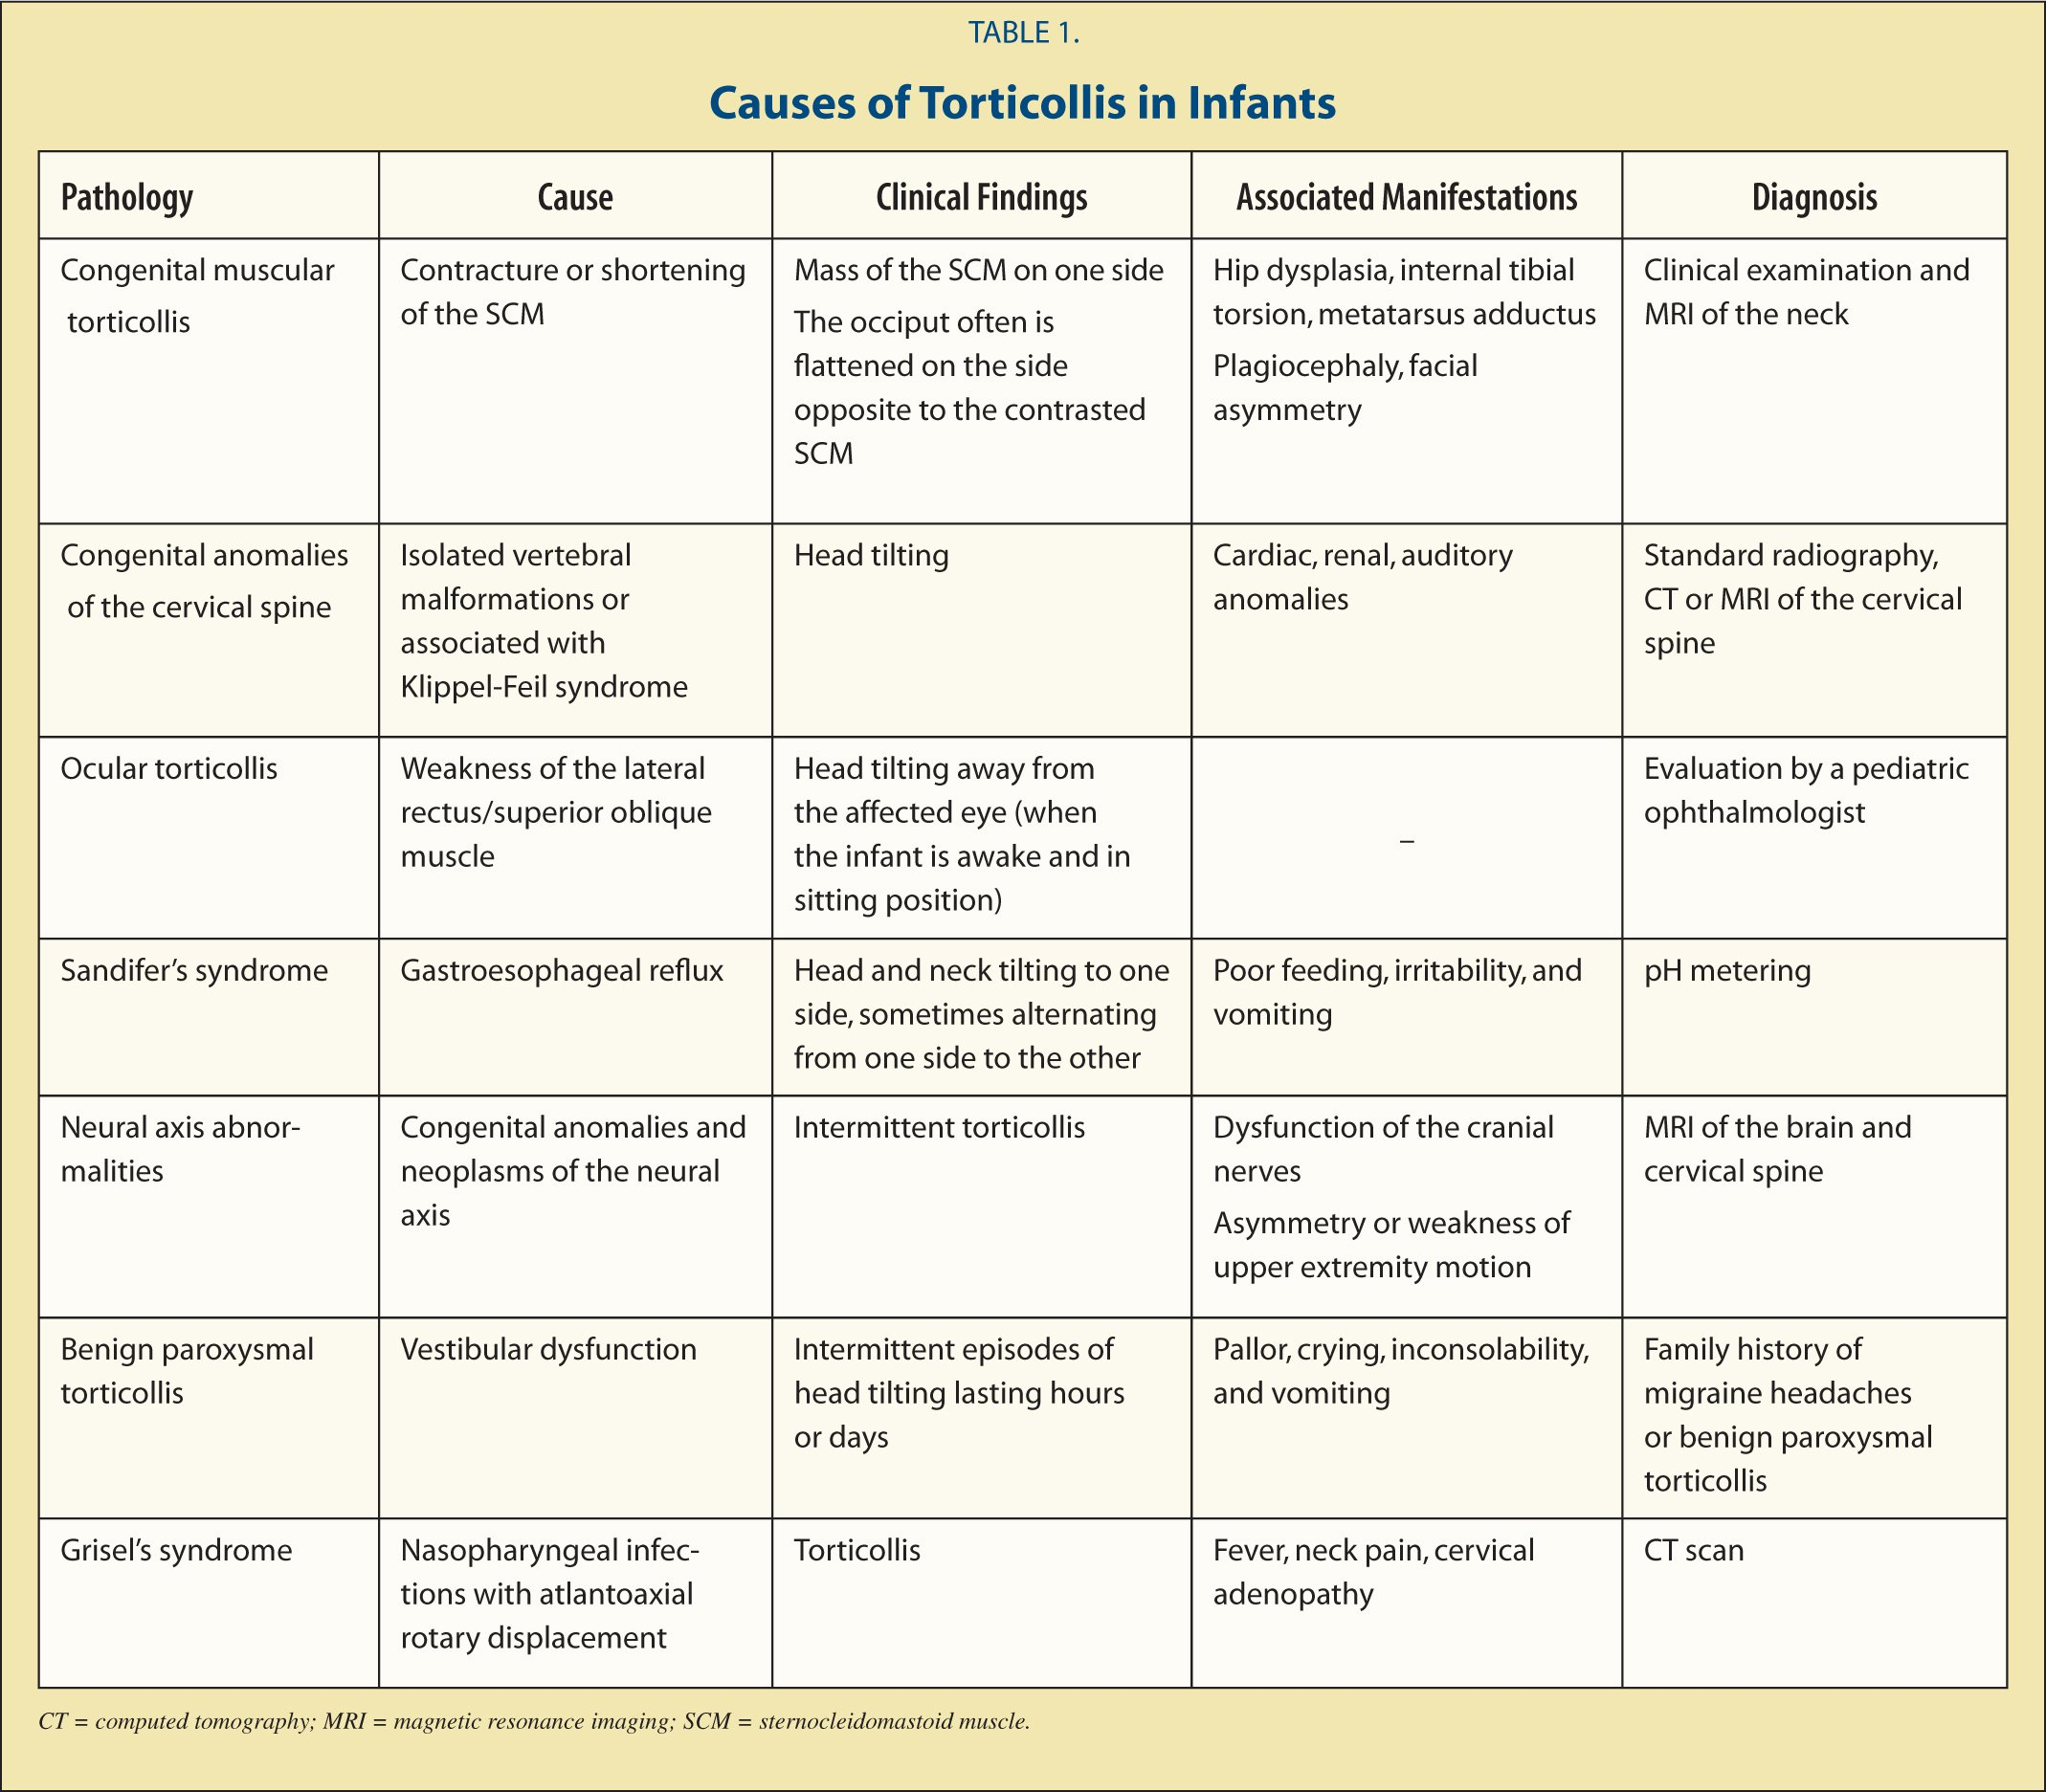 Causes of Torticollis in Infants